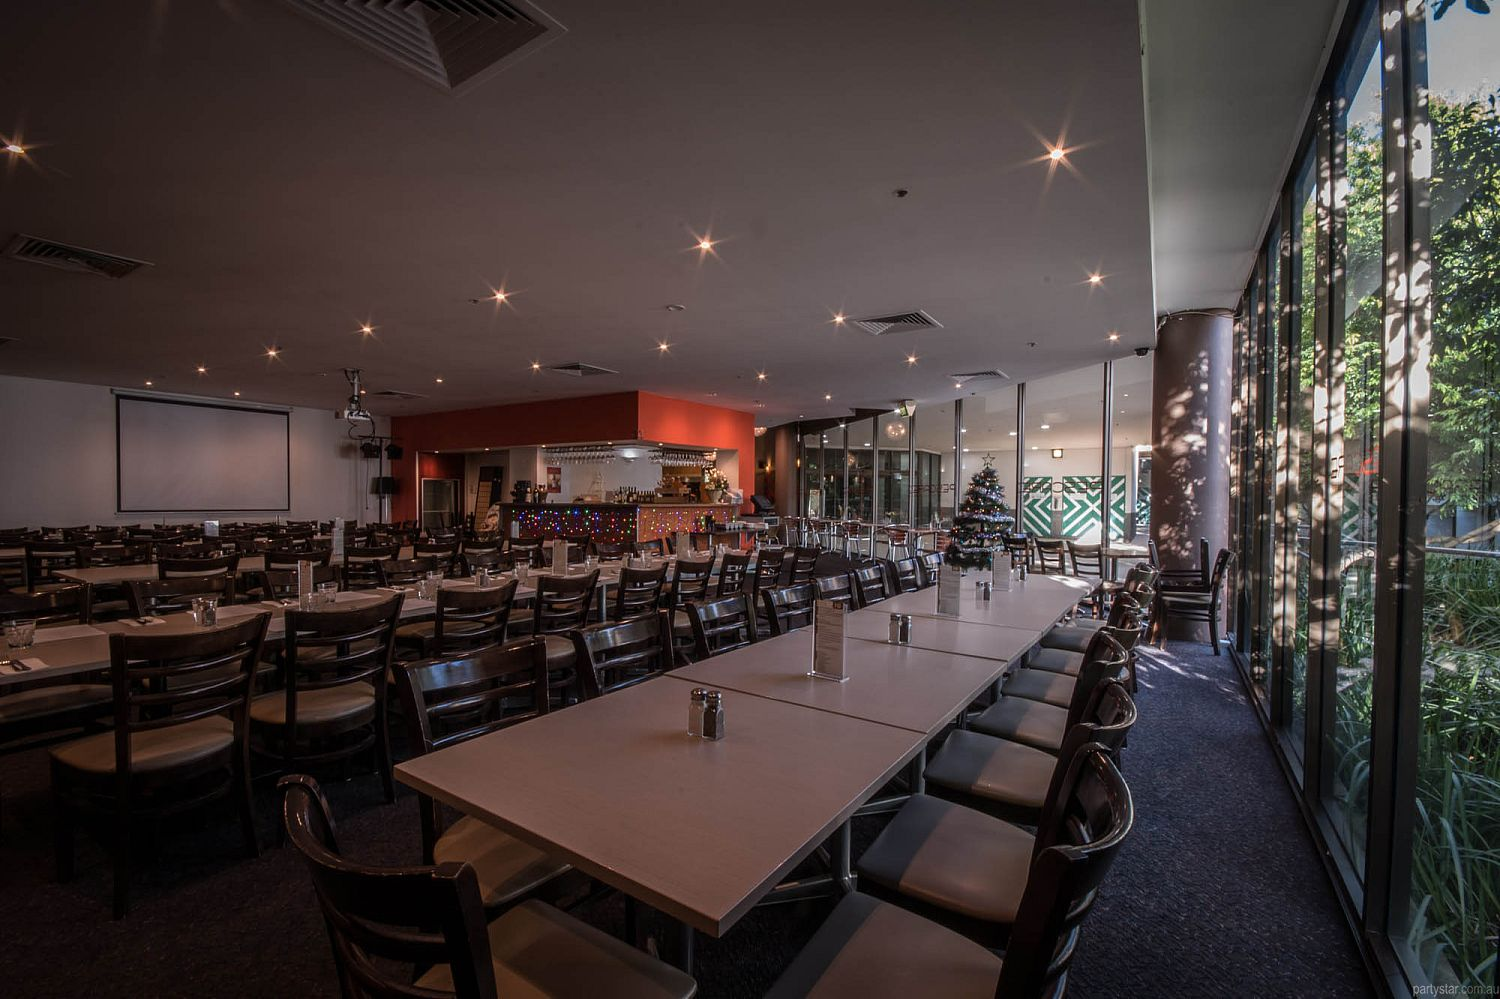 Pescare, Glen Waverley, VIC. Function Room hire photo #2